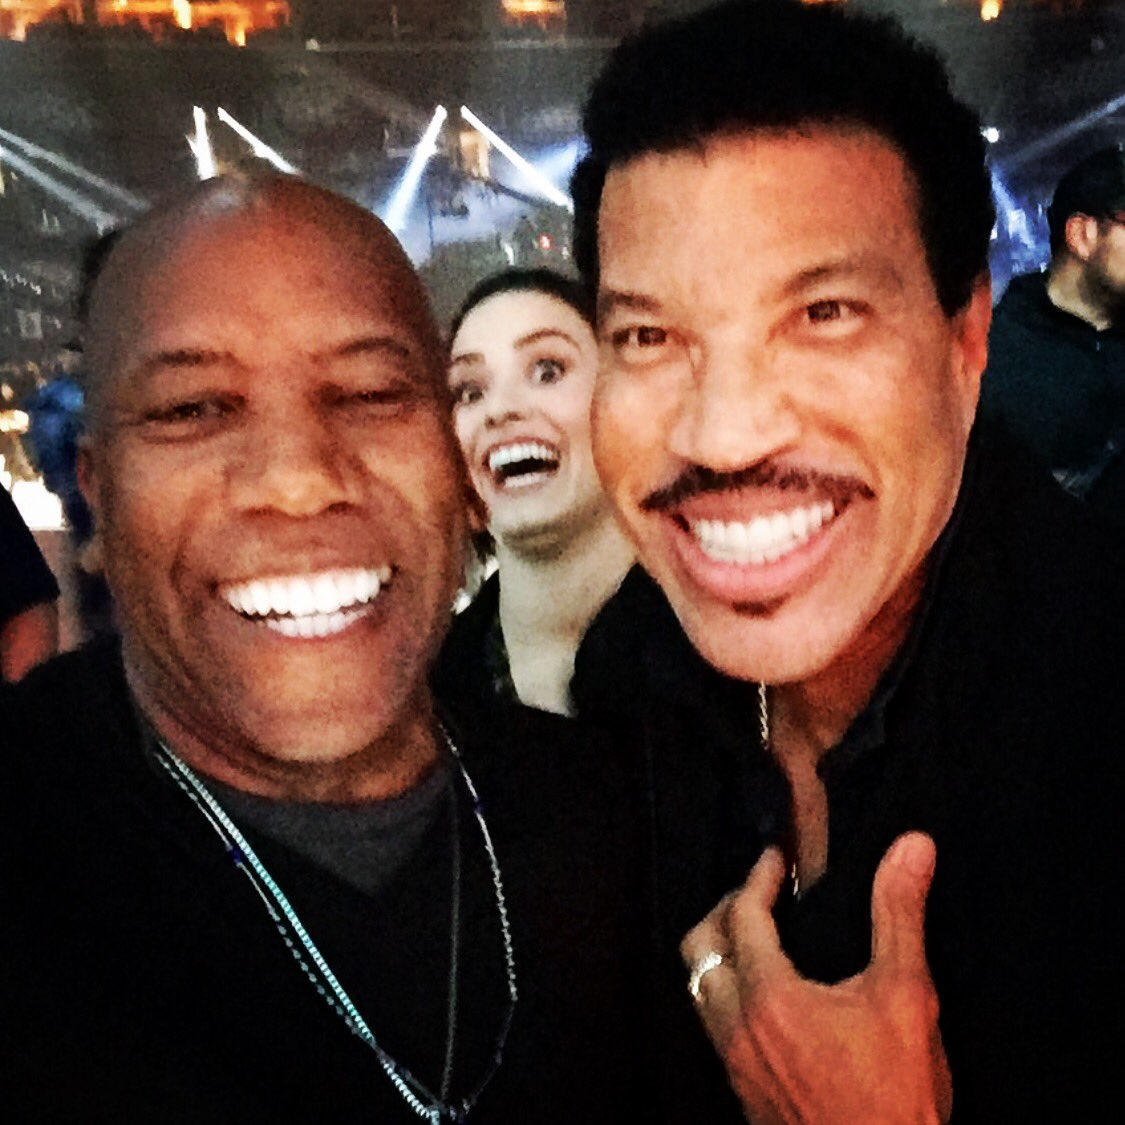 .Happy Birthday to my Brother from another Mother,@LionelRichie! Photo bomb by Demi @ddlovato